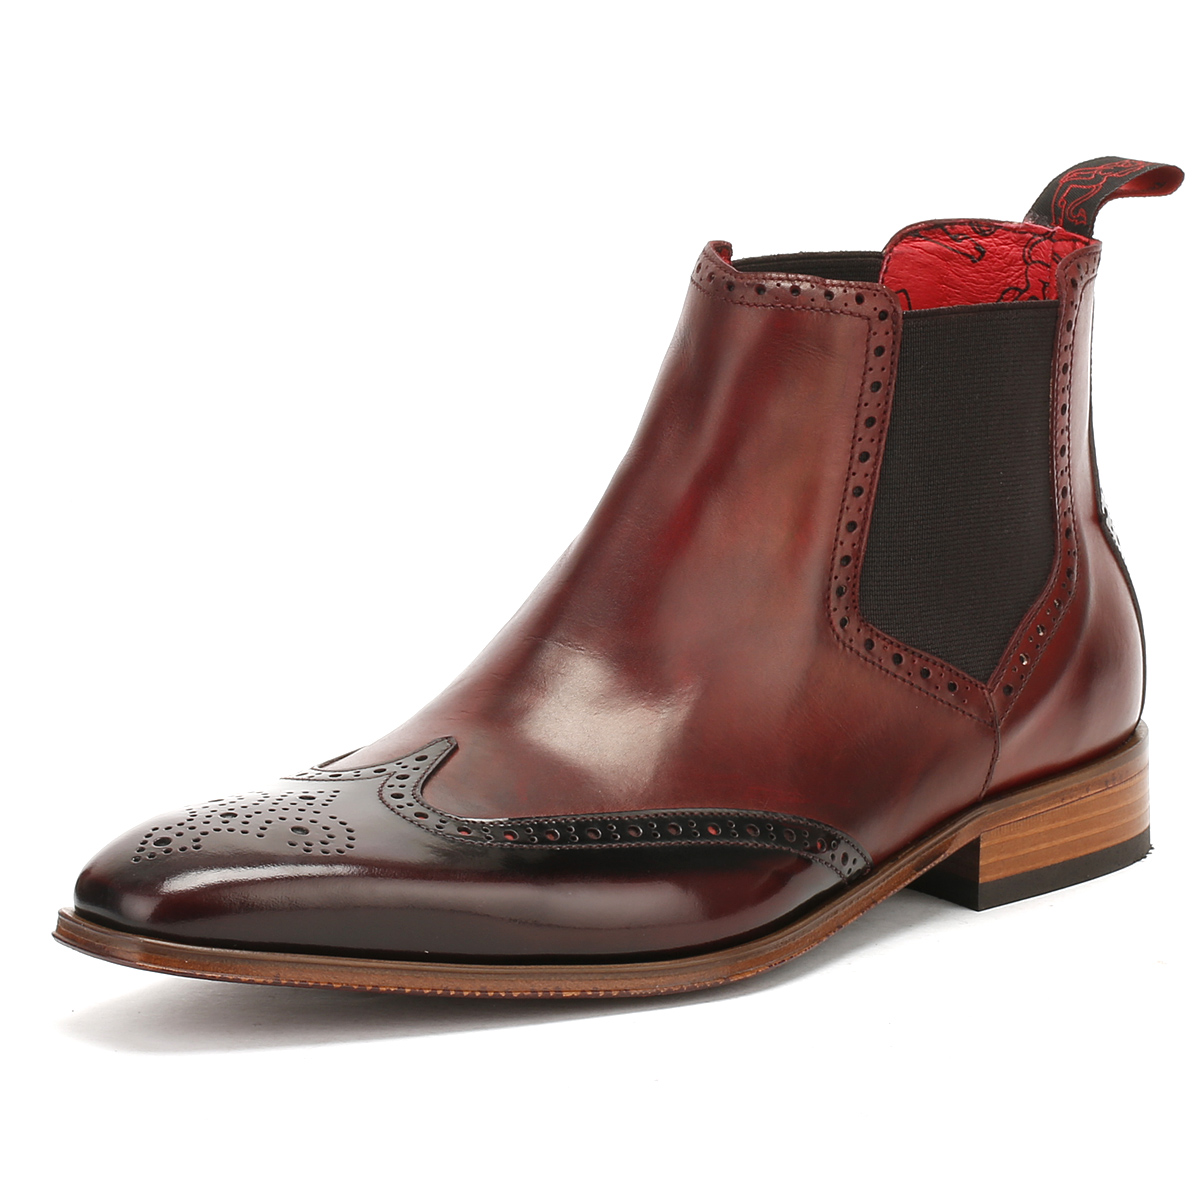 06c71f5a46 Jeffery West Mens Toledo Burgundy Chelsea Shoes Brogue Formal Winter Boots